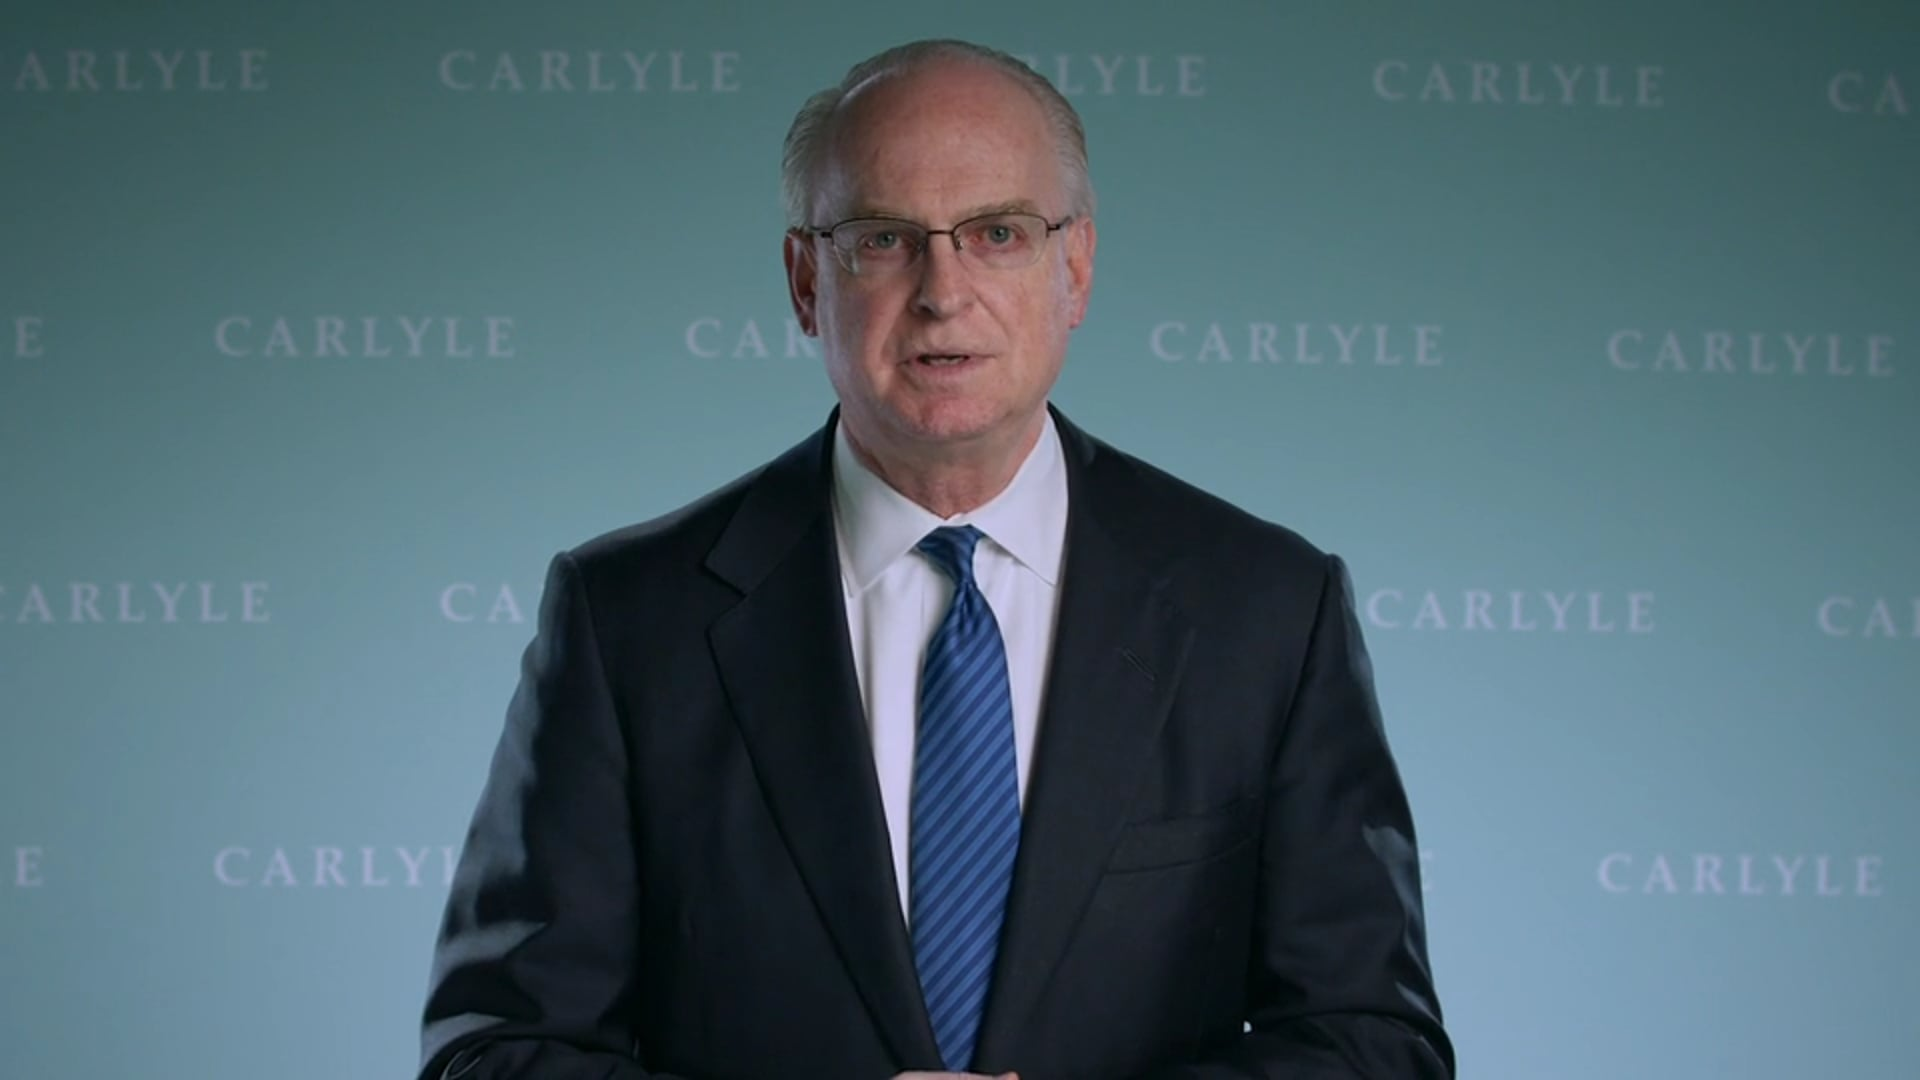 Carlyle Investor Day 2021